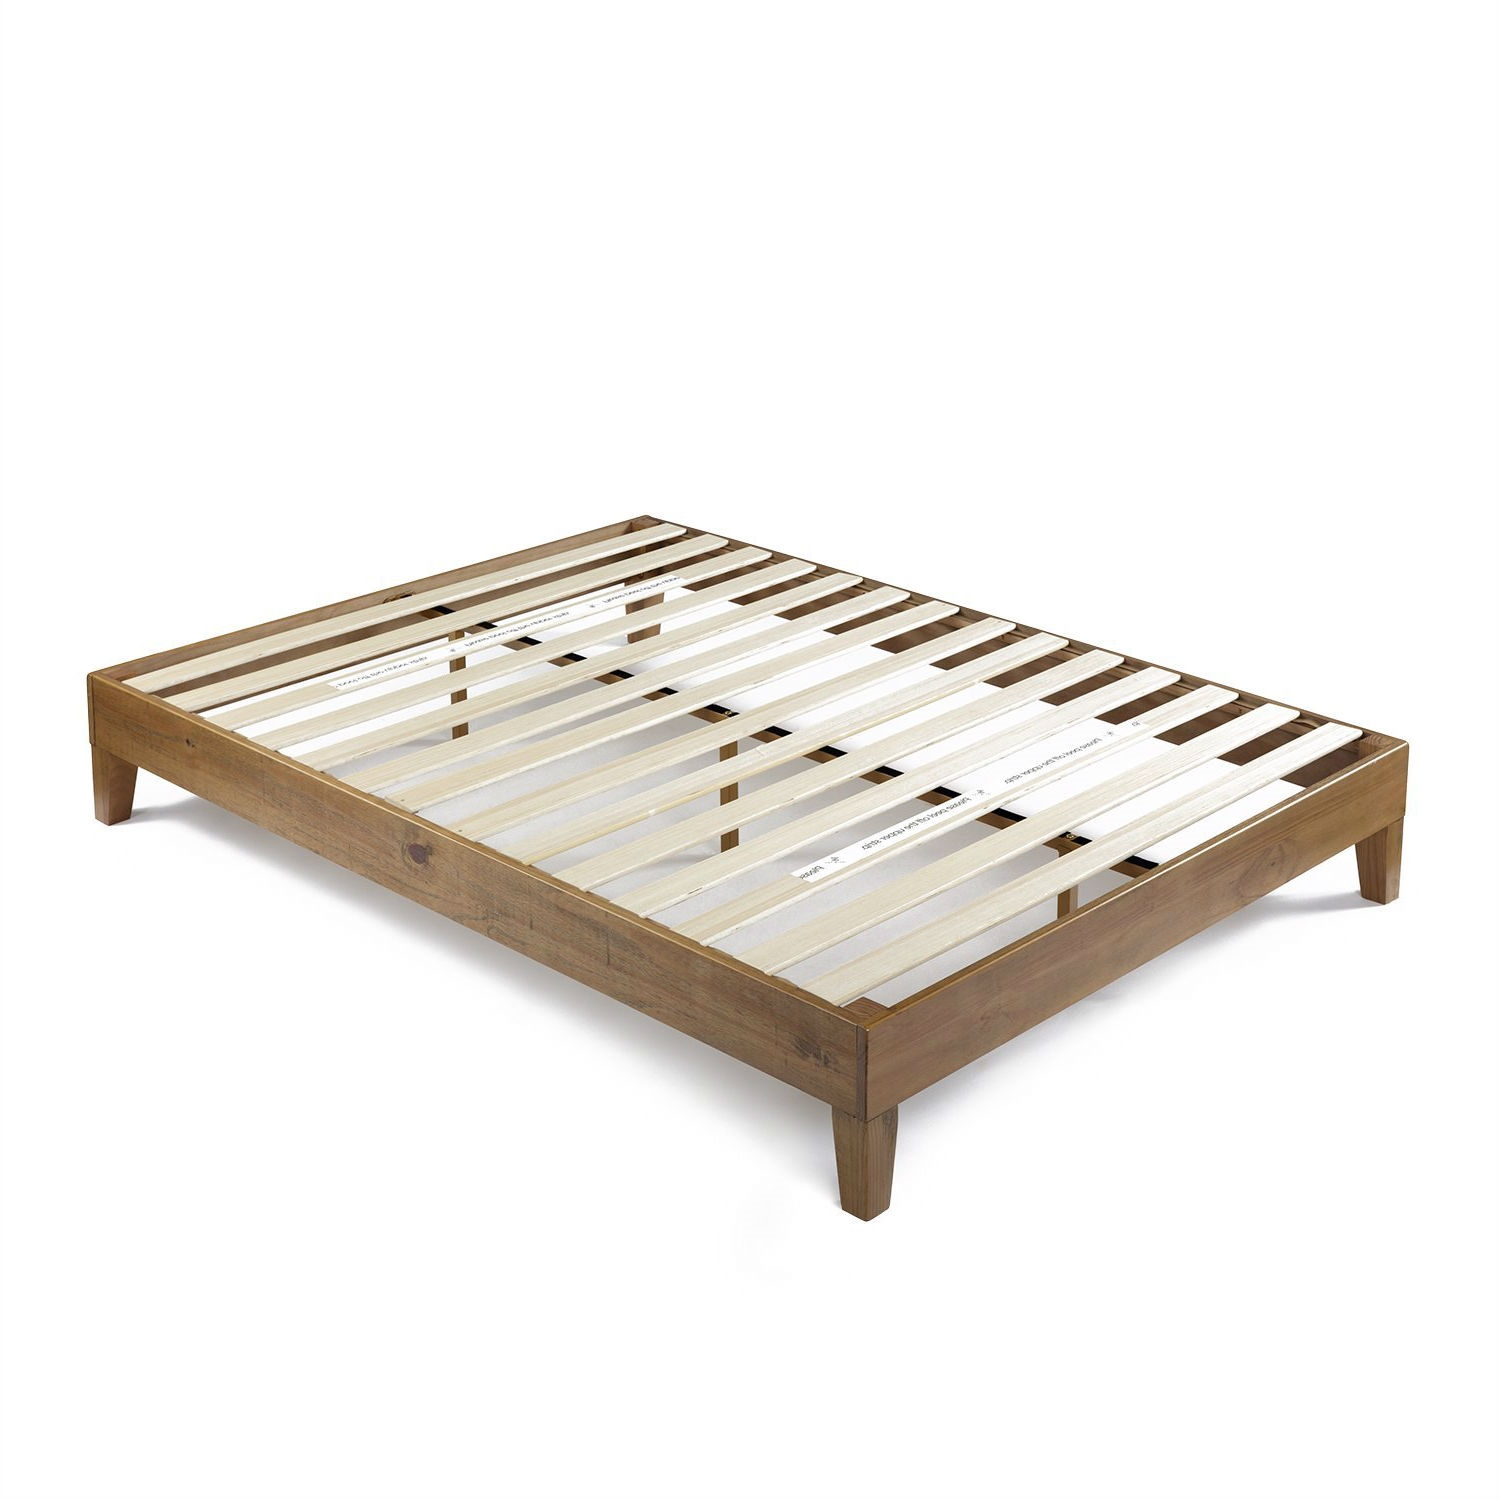 Queen Size Solid Wood Modern Platform Bed Frame In Rustic Pine Finish Fastfurnishings Com